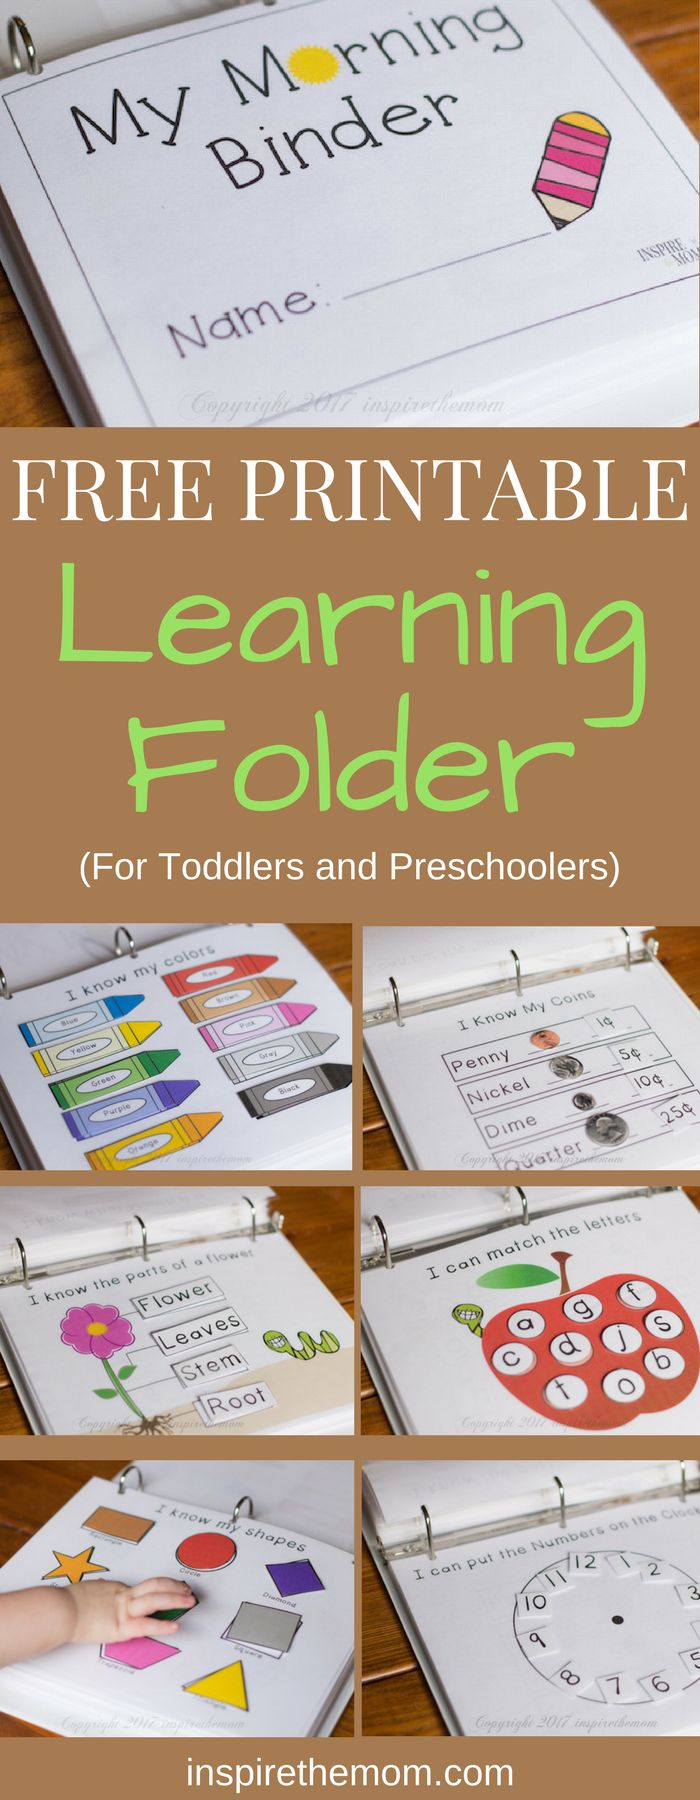 Whether you are teaching your prechooler at home or working with them in preparation for school, here is a free printable learning binder for you. #diy_school_folders